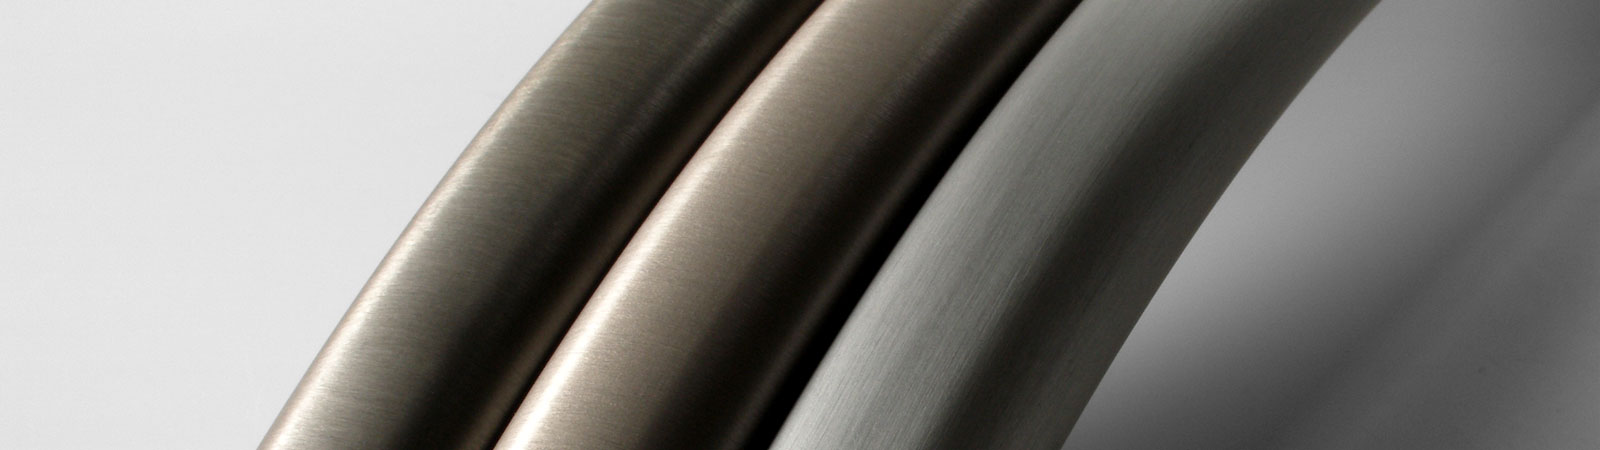 Aluminium handles with surface structures